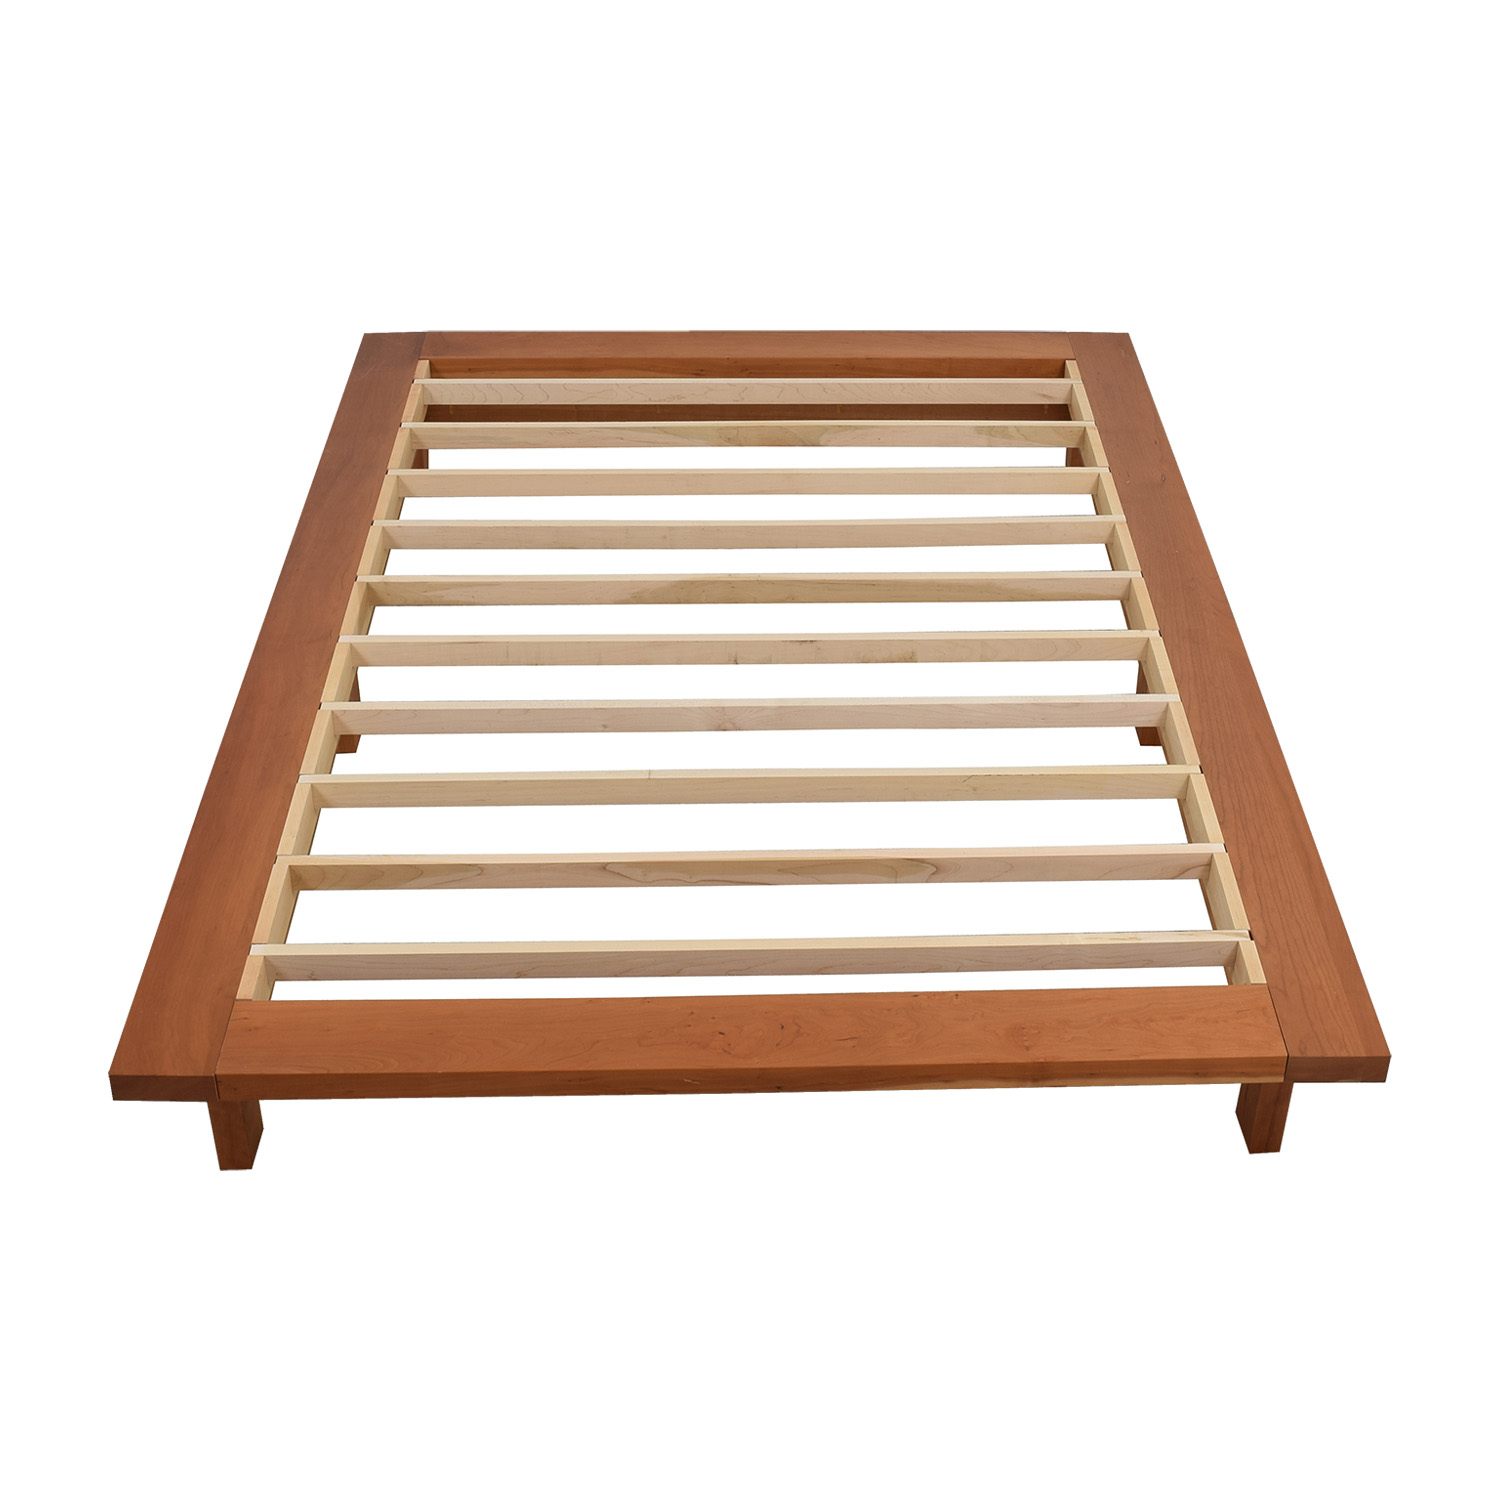 Room & Board Room & Board Campo Full Platform Bed Frame for sale